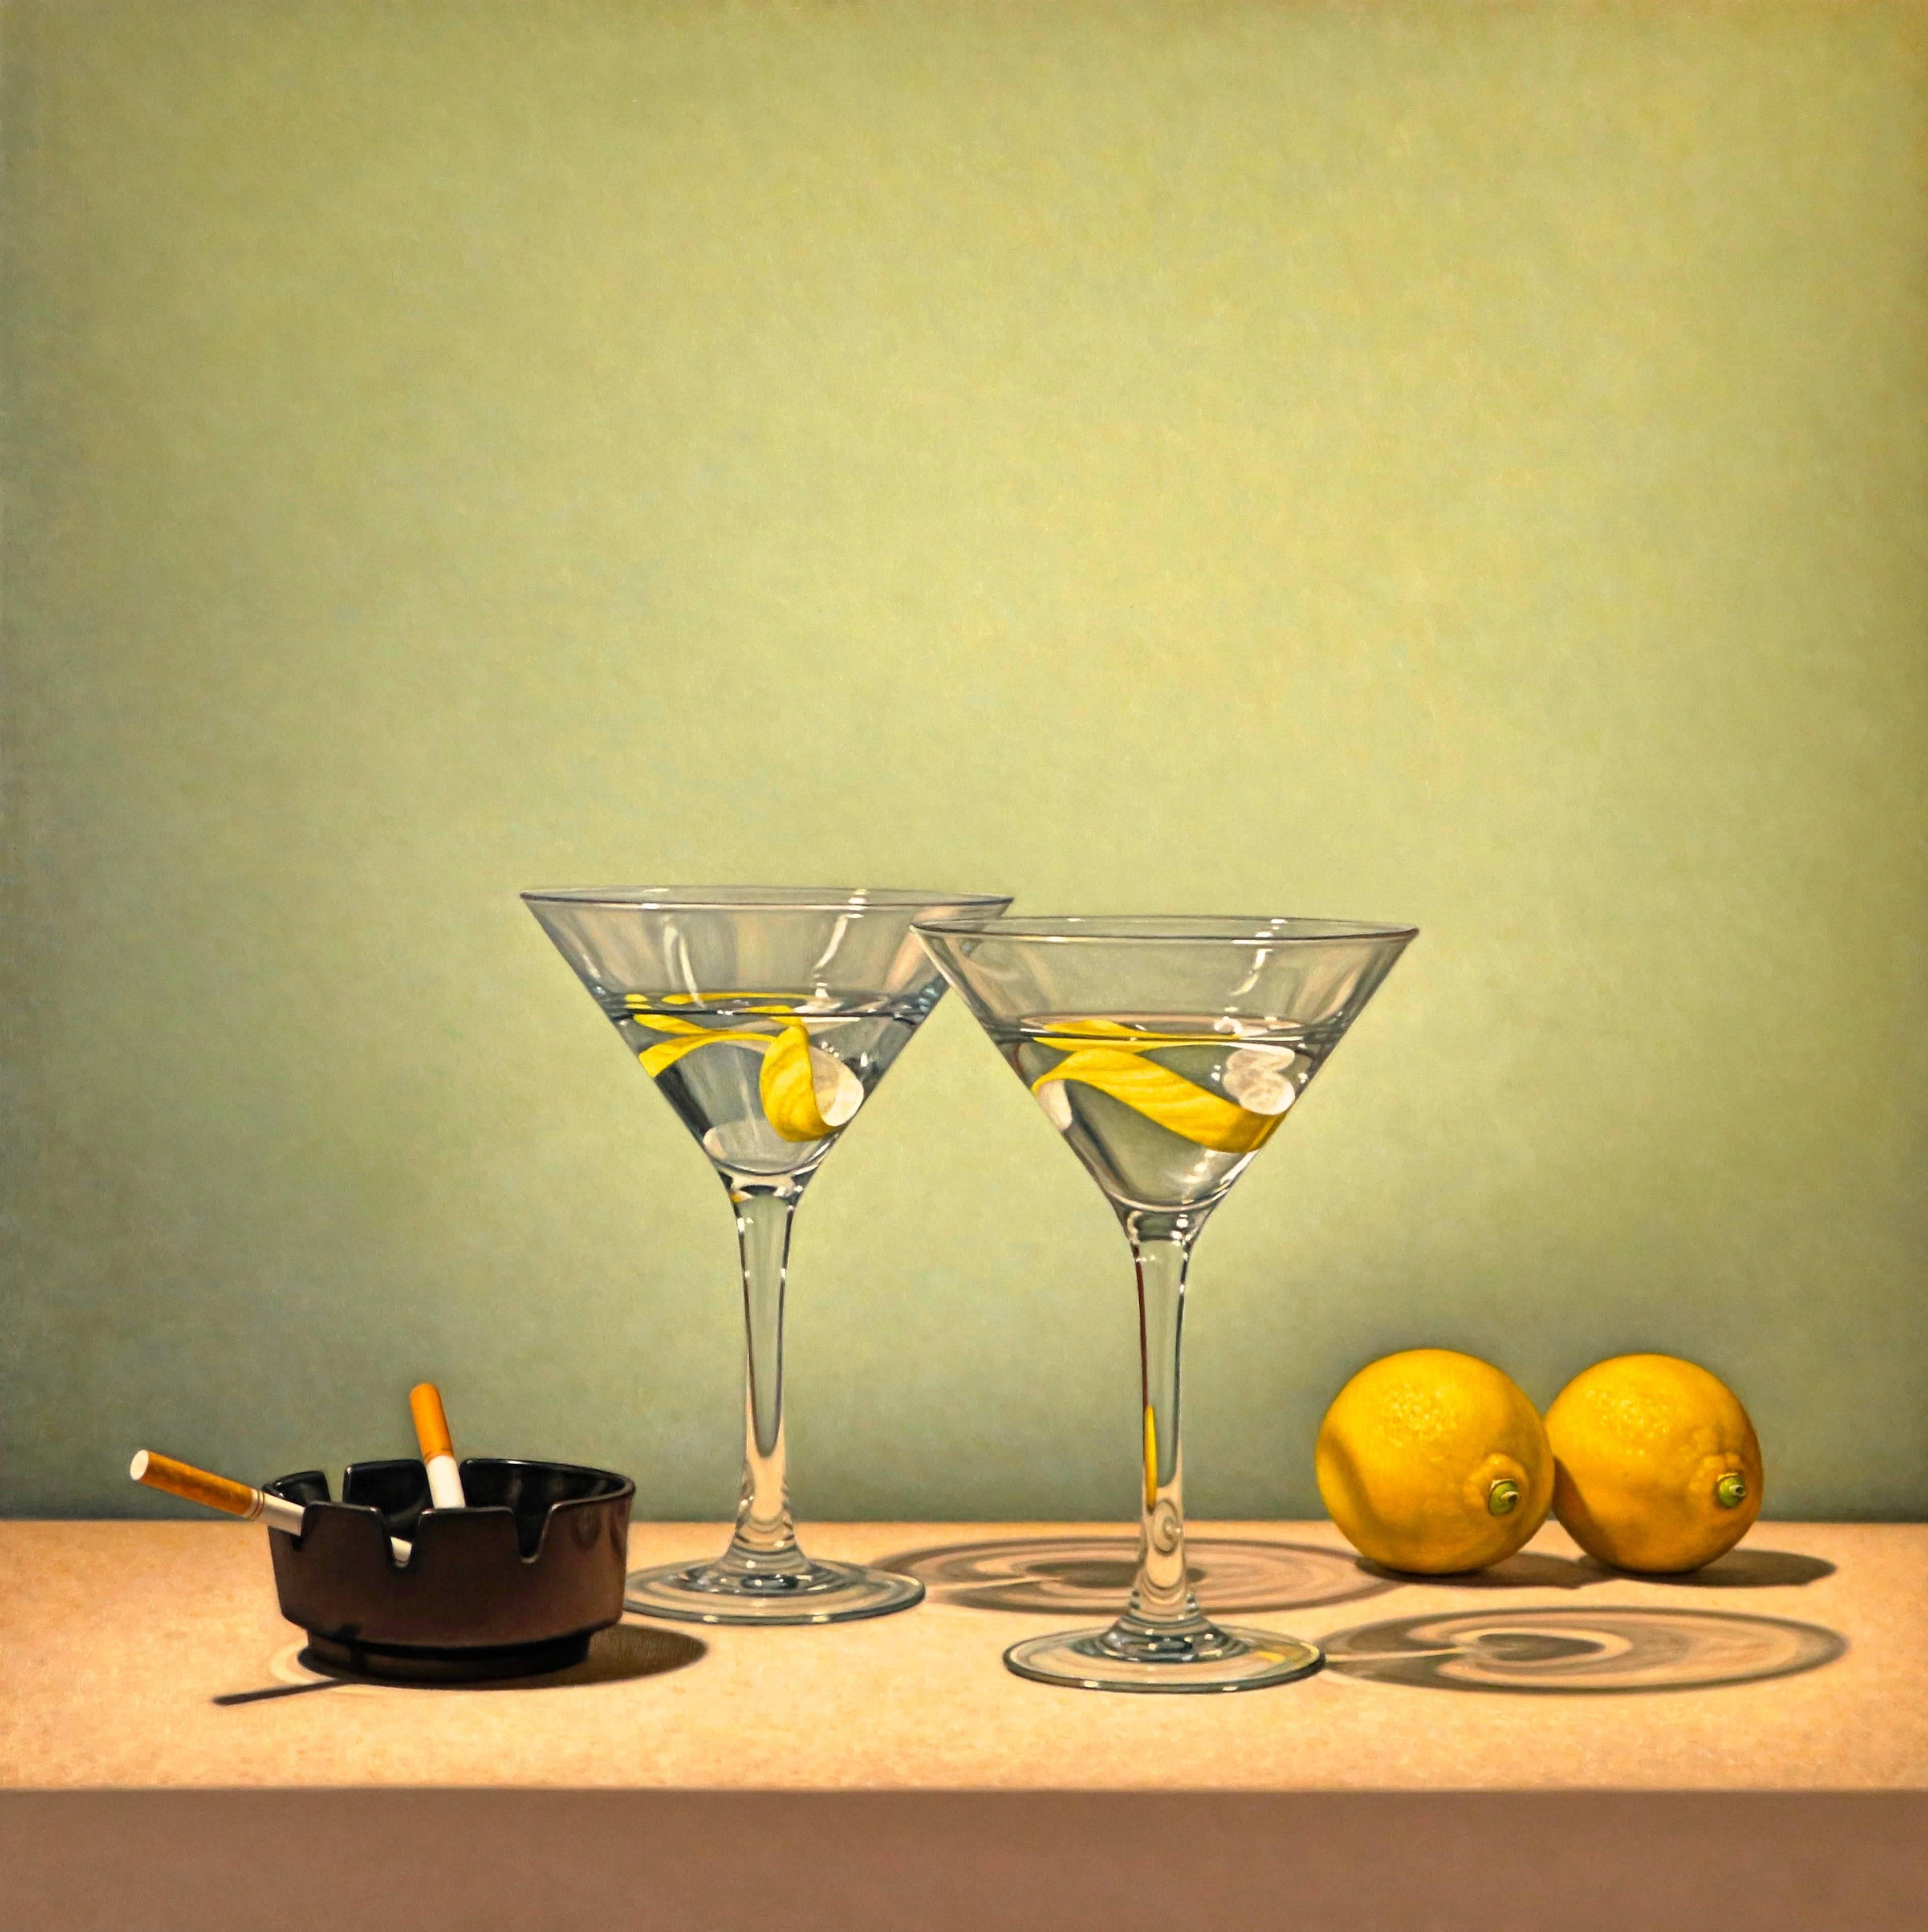 Tom Gregg - Olives and Martini, Painting For Sale at 1stdibs